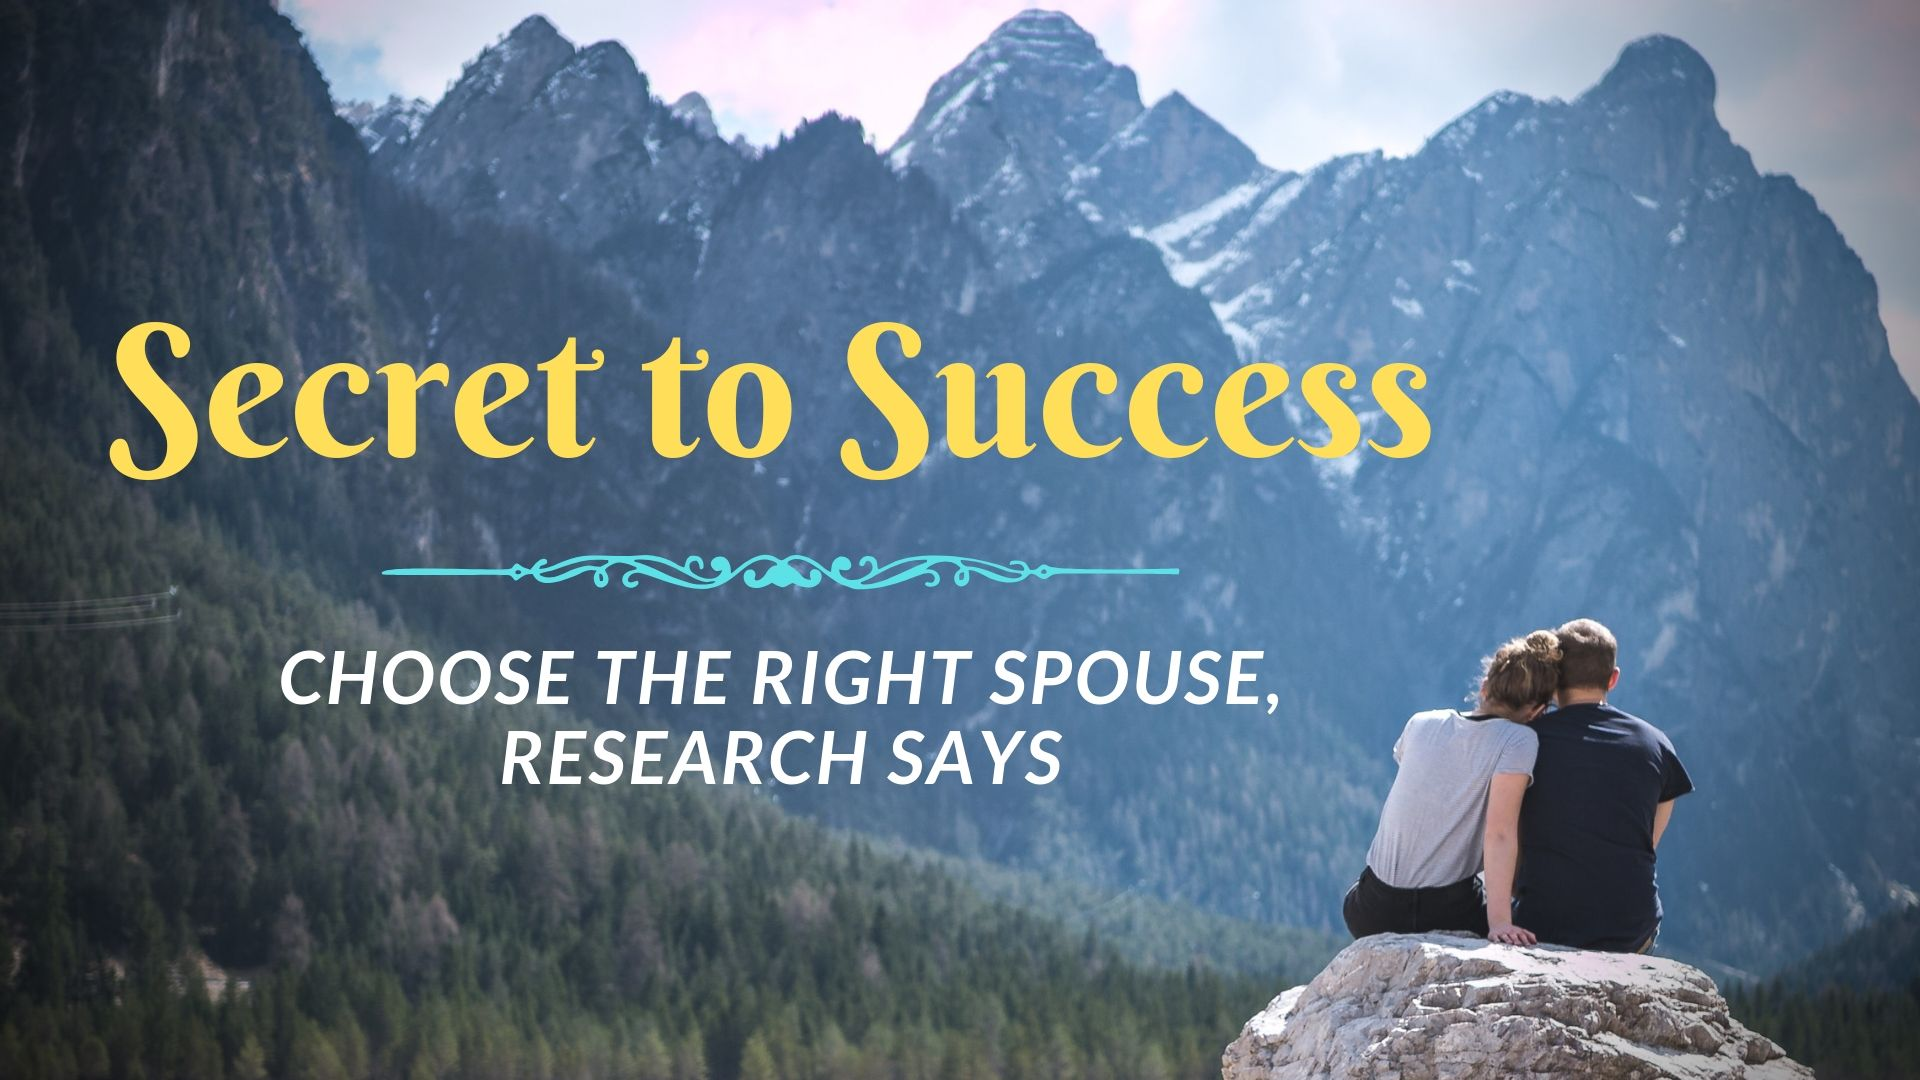 Research shows that the secret to success is having a supportive spouse